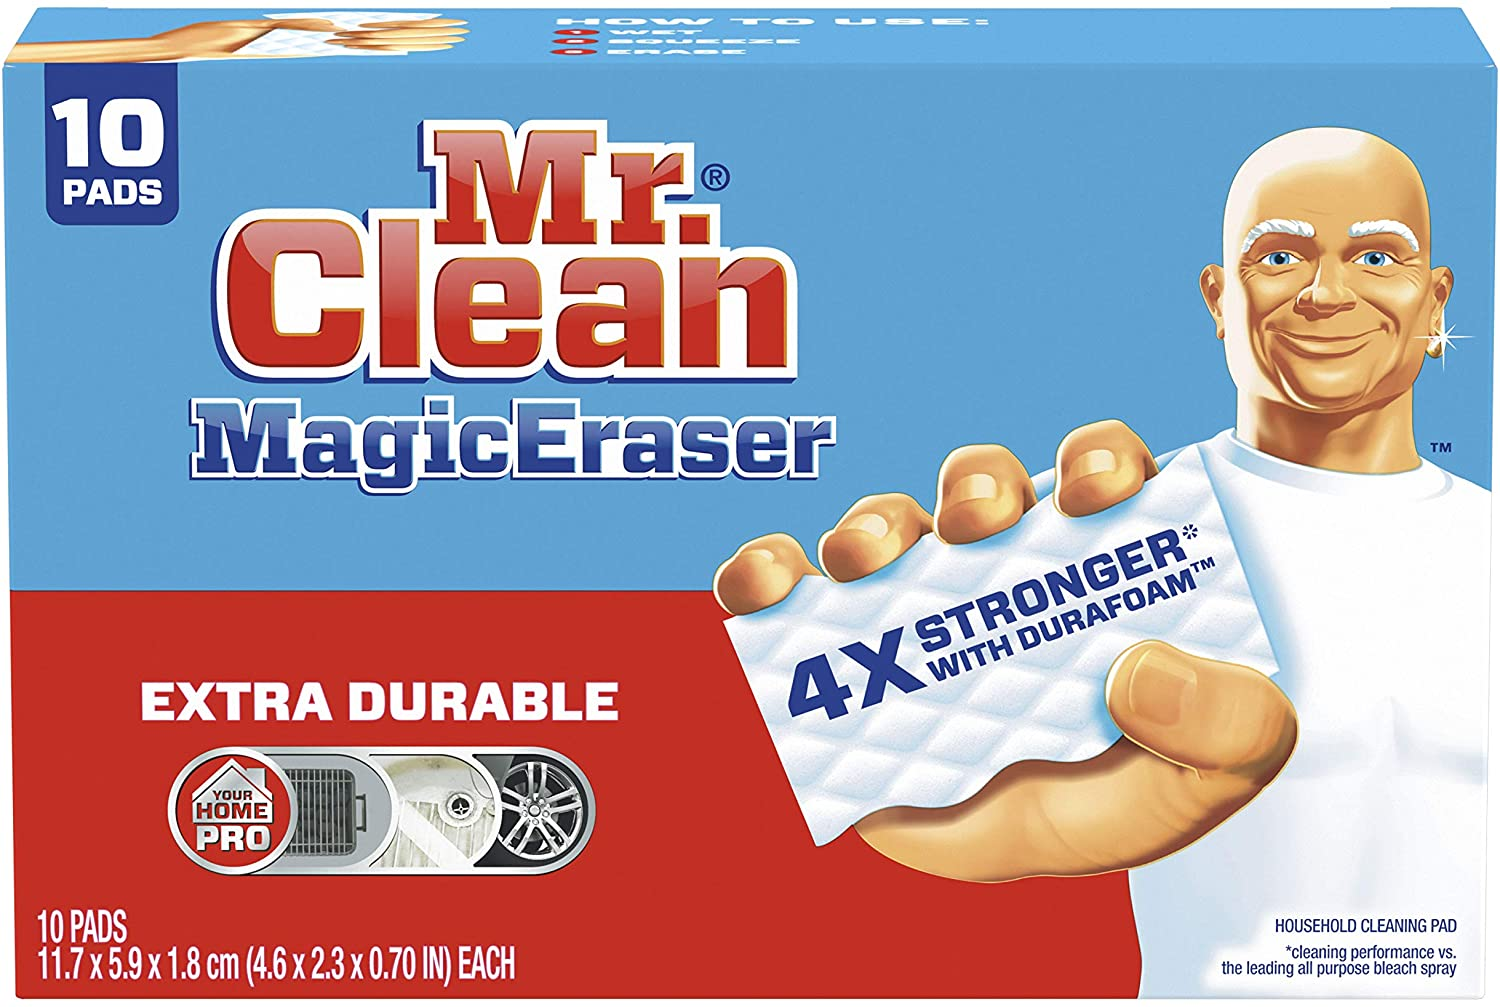 Mr Clean Magic Eraser Extra Durable, Cleaning Pads with Durafoam, 10 Count : Health & Household